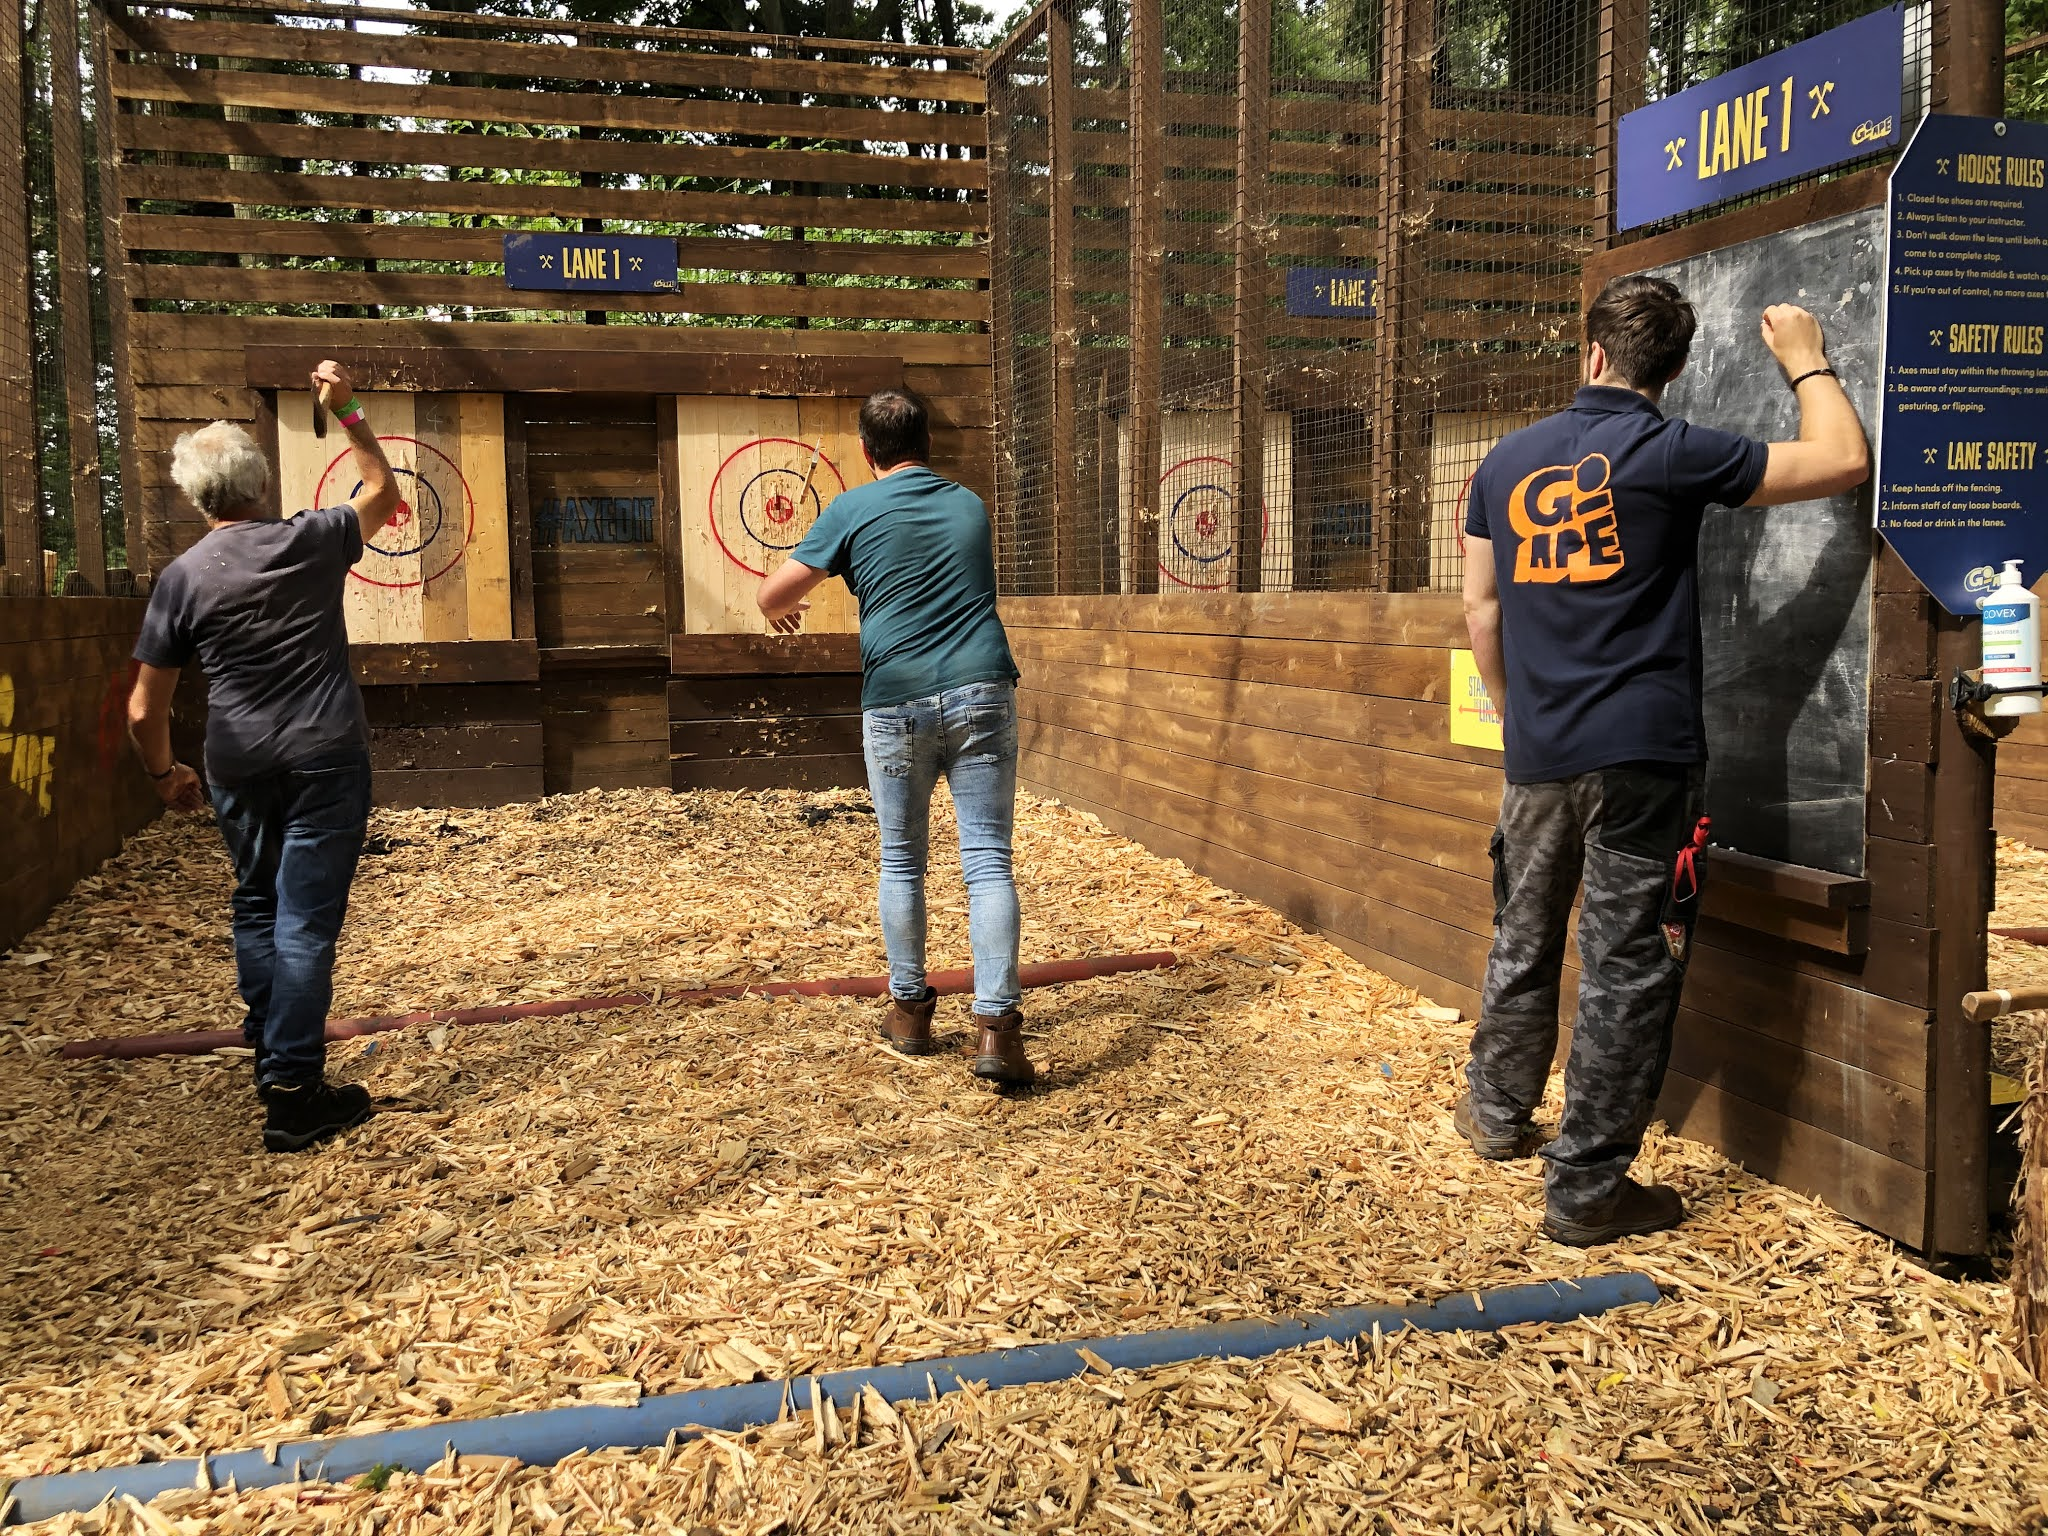 Two men throwing axes towards a wooden target board while another man standing to the side is keeping score